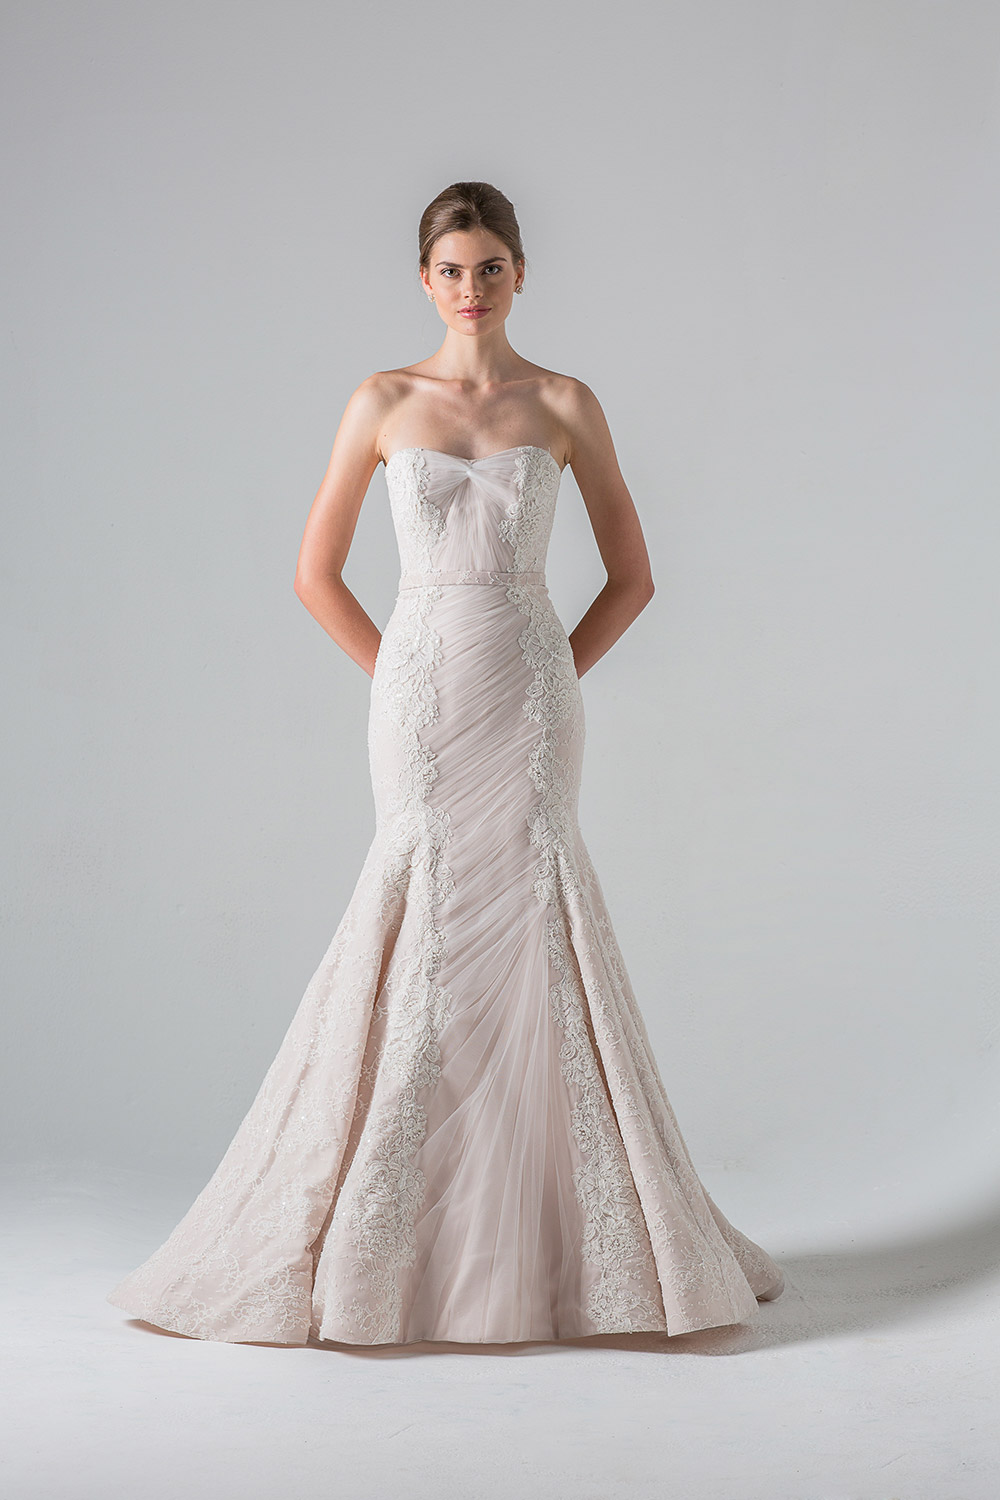 Luxembourg - Anne Barge Couture Spring 2016 Collection. www.theweddingnotebook.com